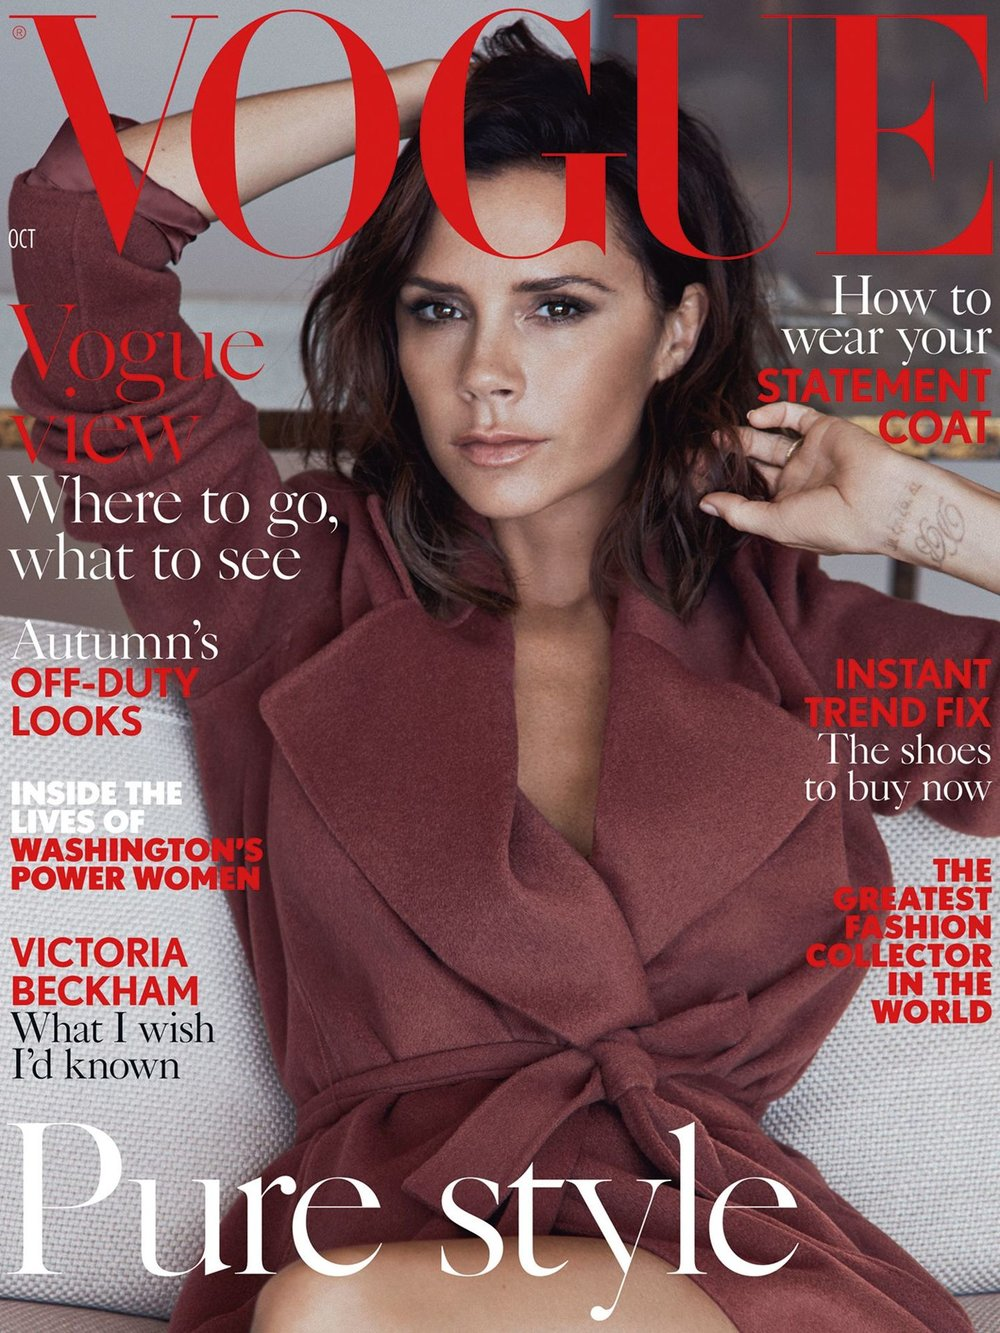 Vogue-Oct16-Cover.jpg